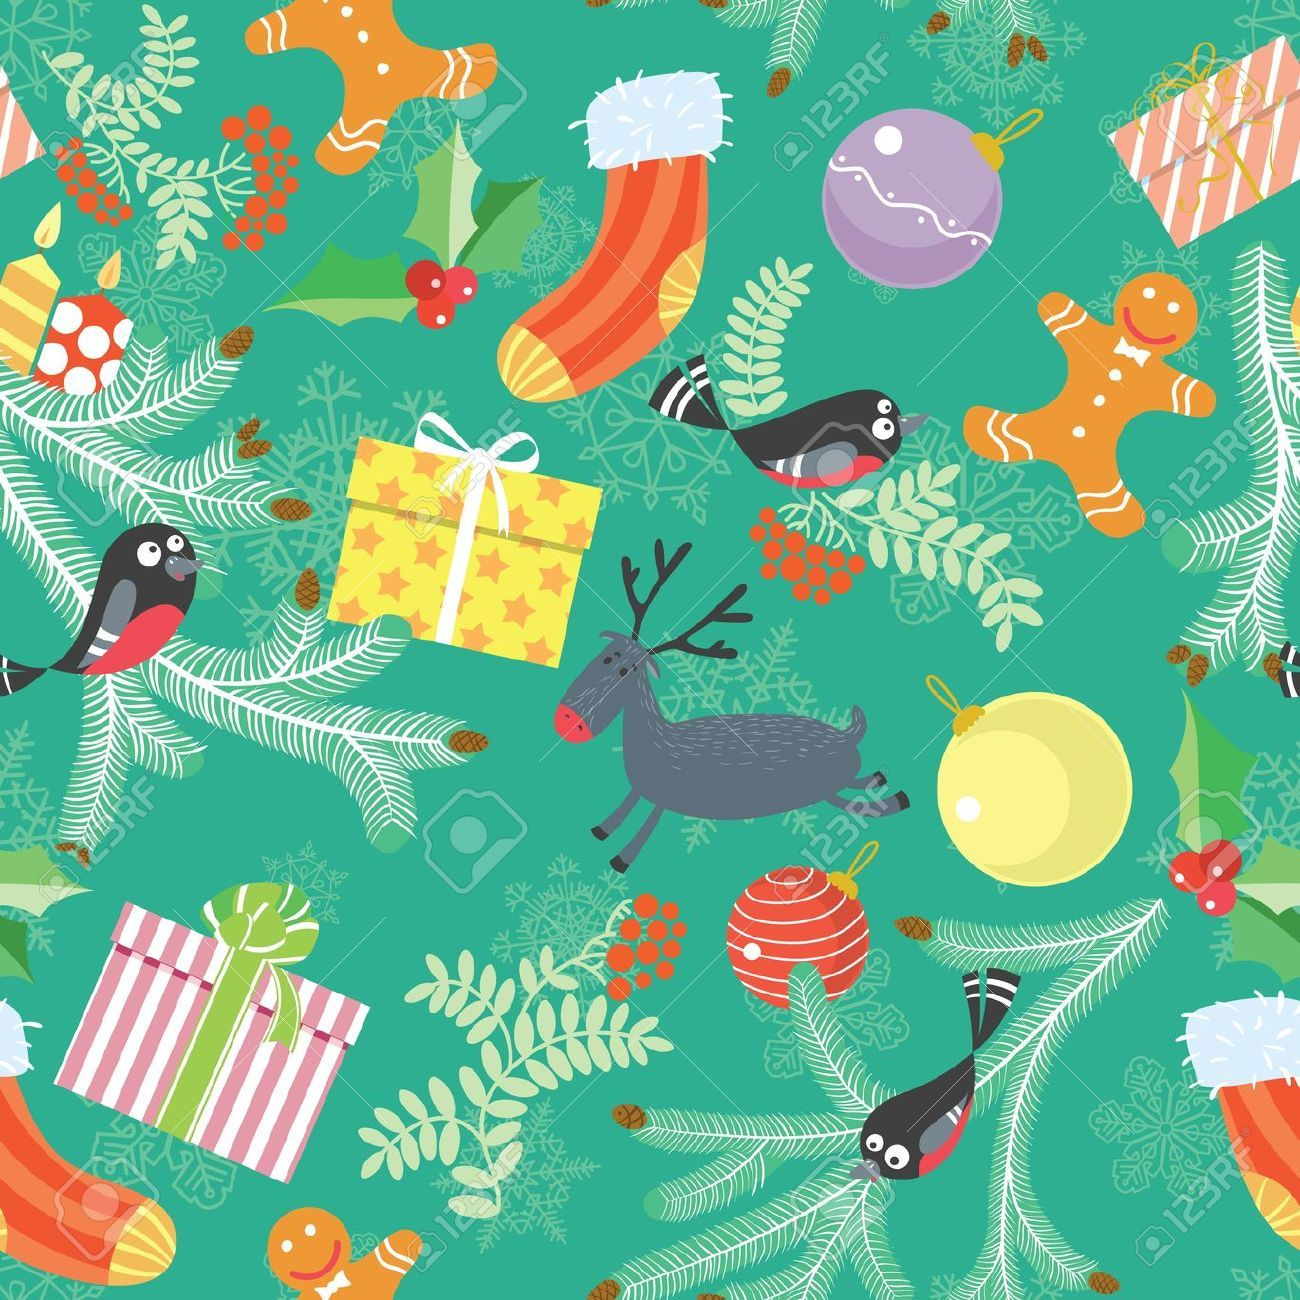 Cute Christmas Pattern Wallpapers - Top